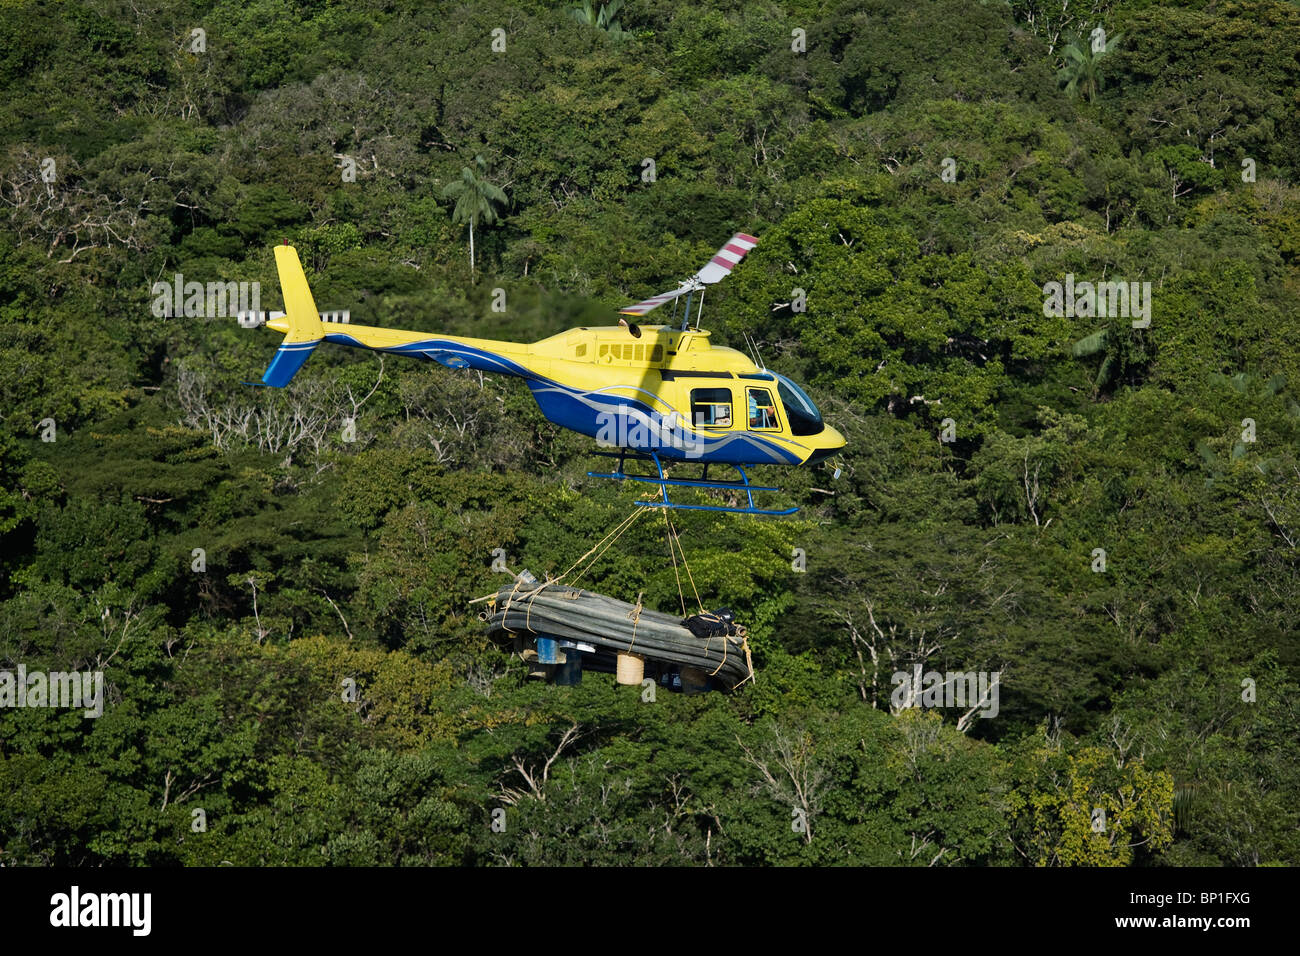 Helicopter transporting mining equipment for miners working in the Venezuela forest - Stock Image